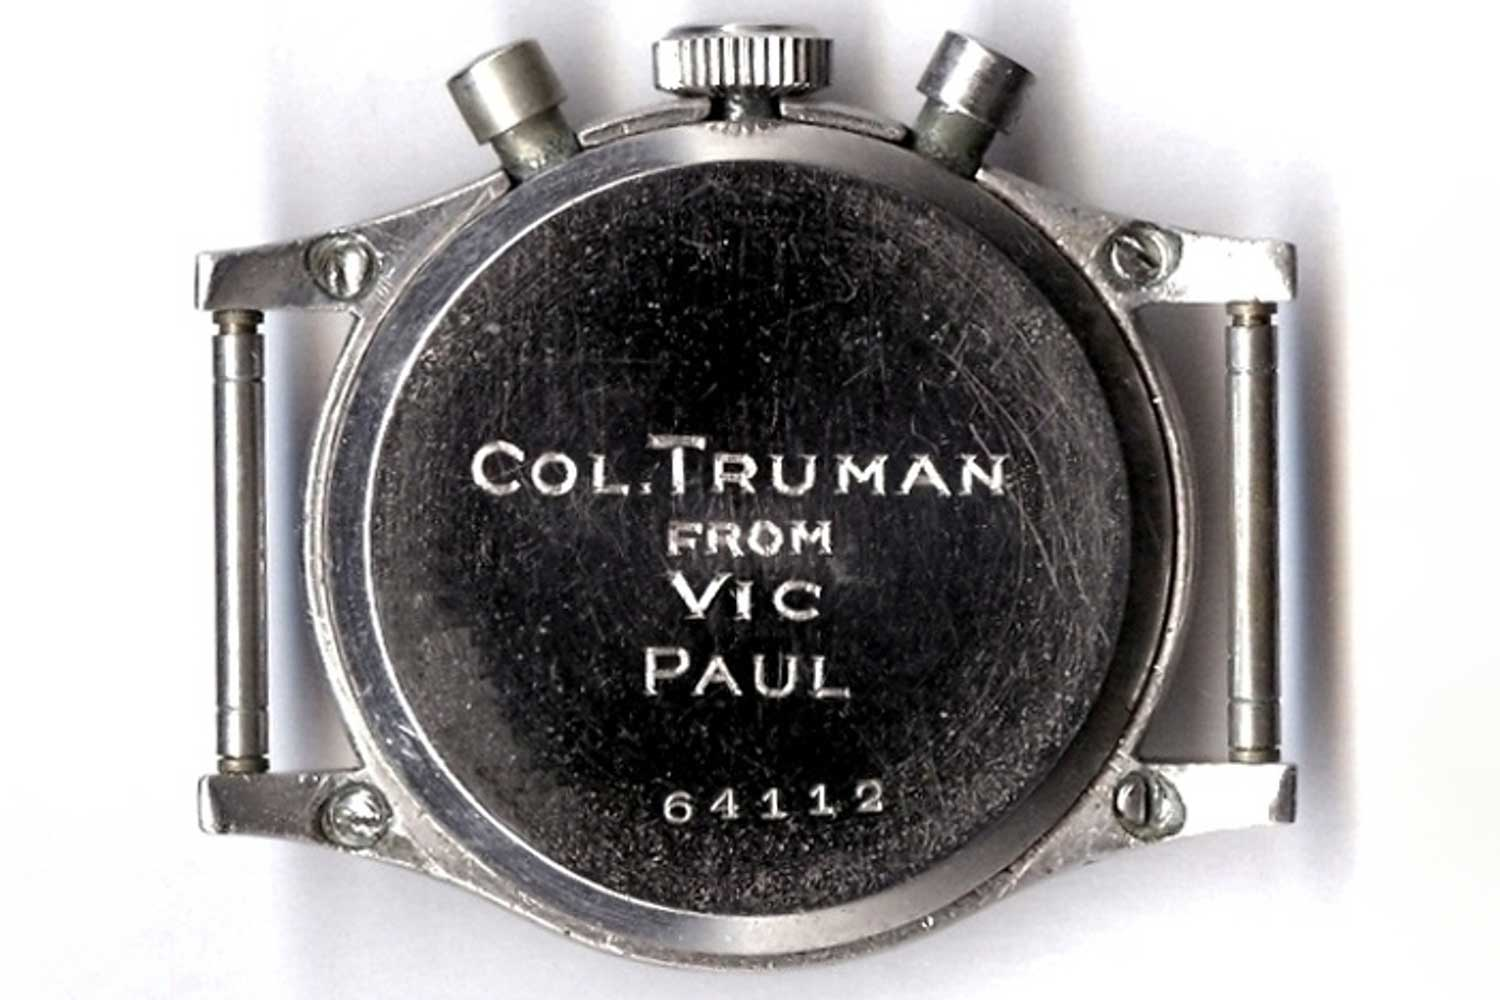 """The caseback of President Truman's watch bears the inscription """"Col. Truman From Vic Paul"""", apparently the senate staffers who presented him the watch."""